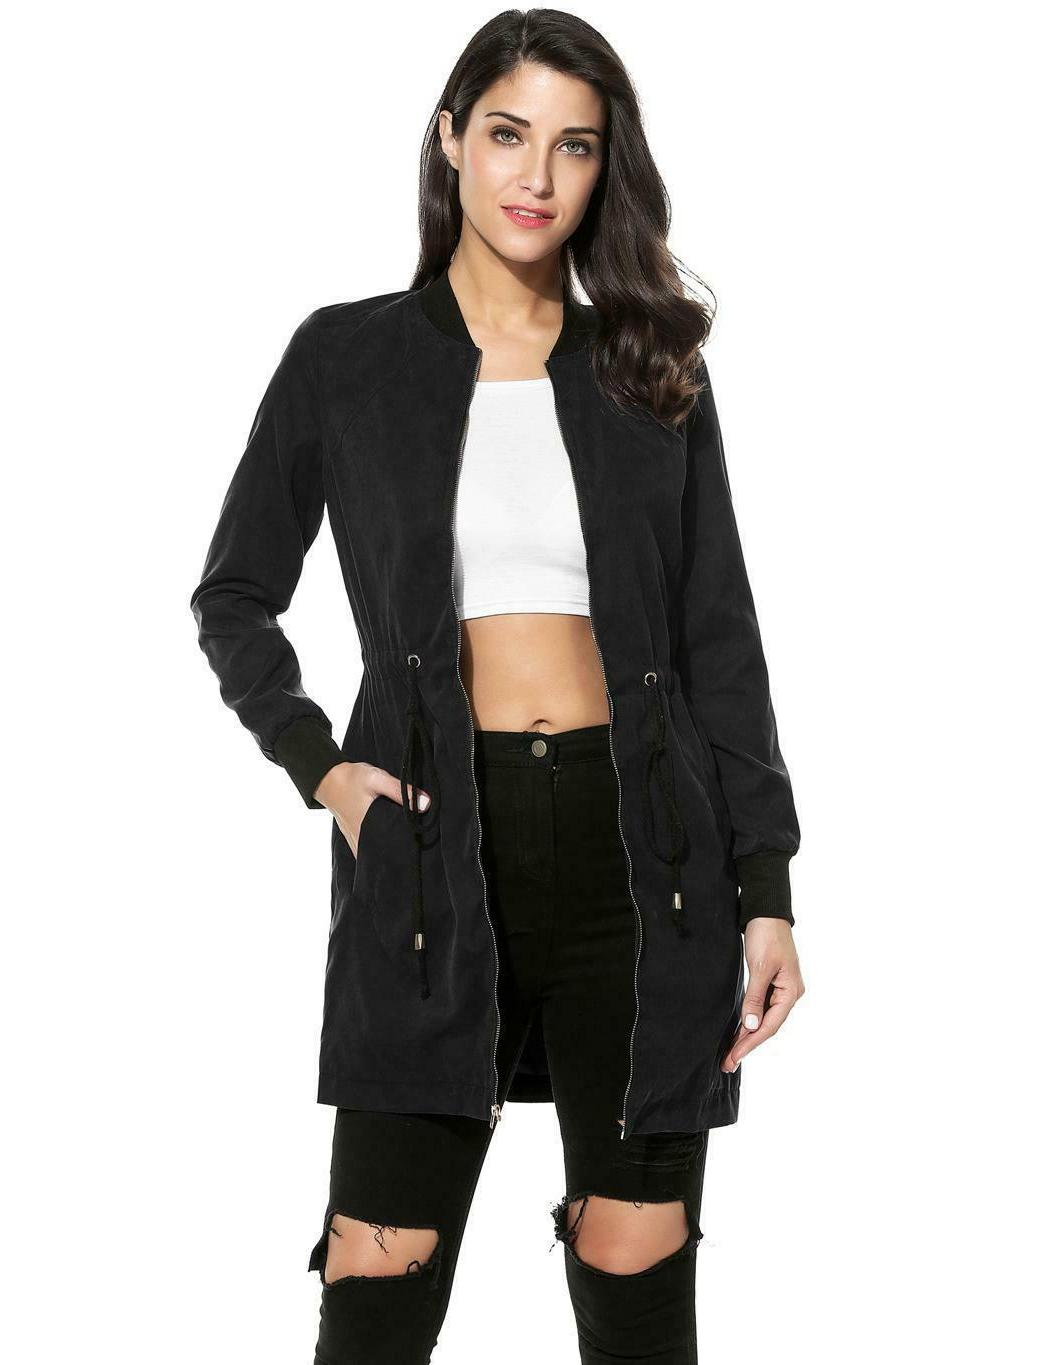 Women Long Sleeve Solid Zip-up Jacket LKR8